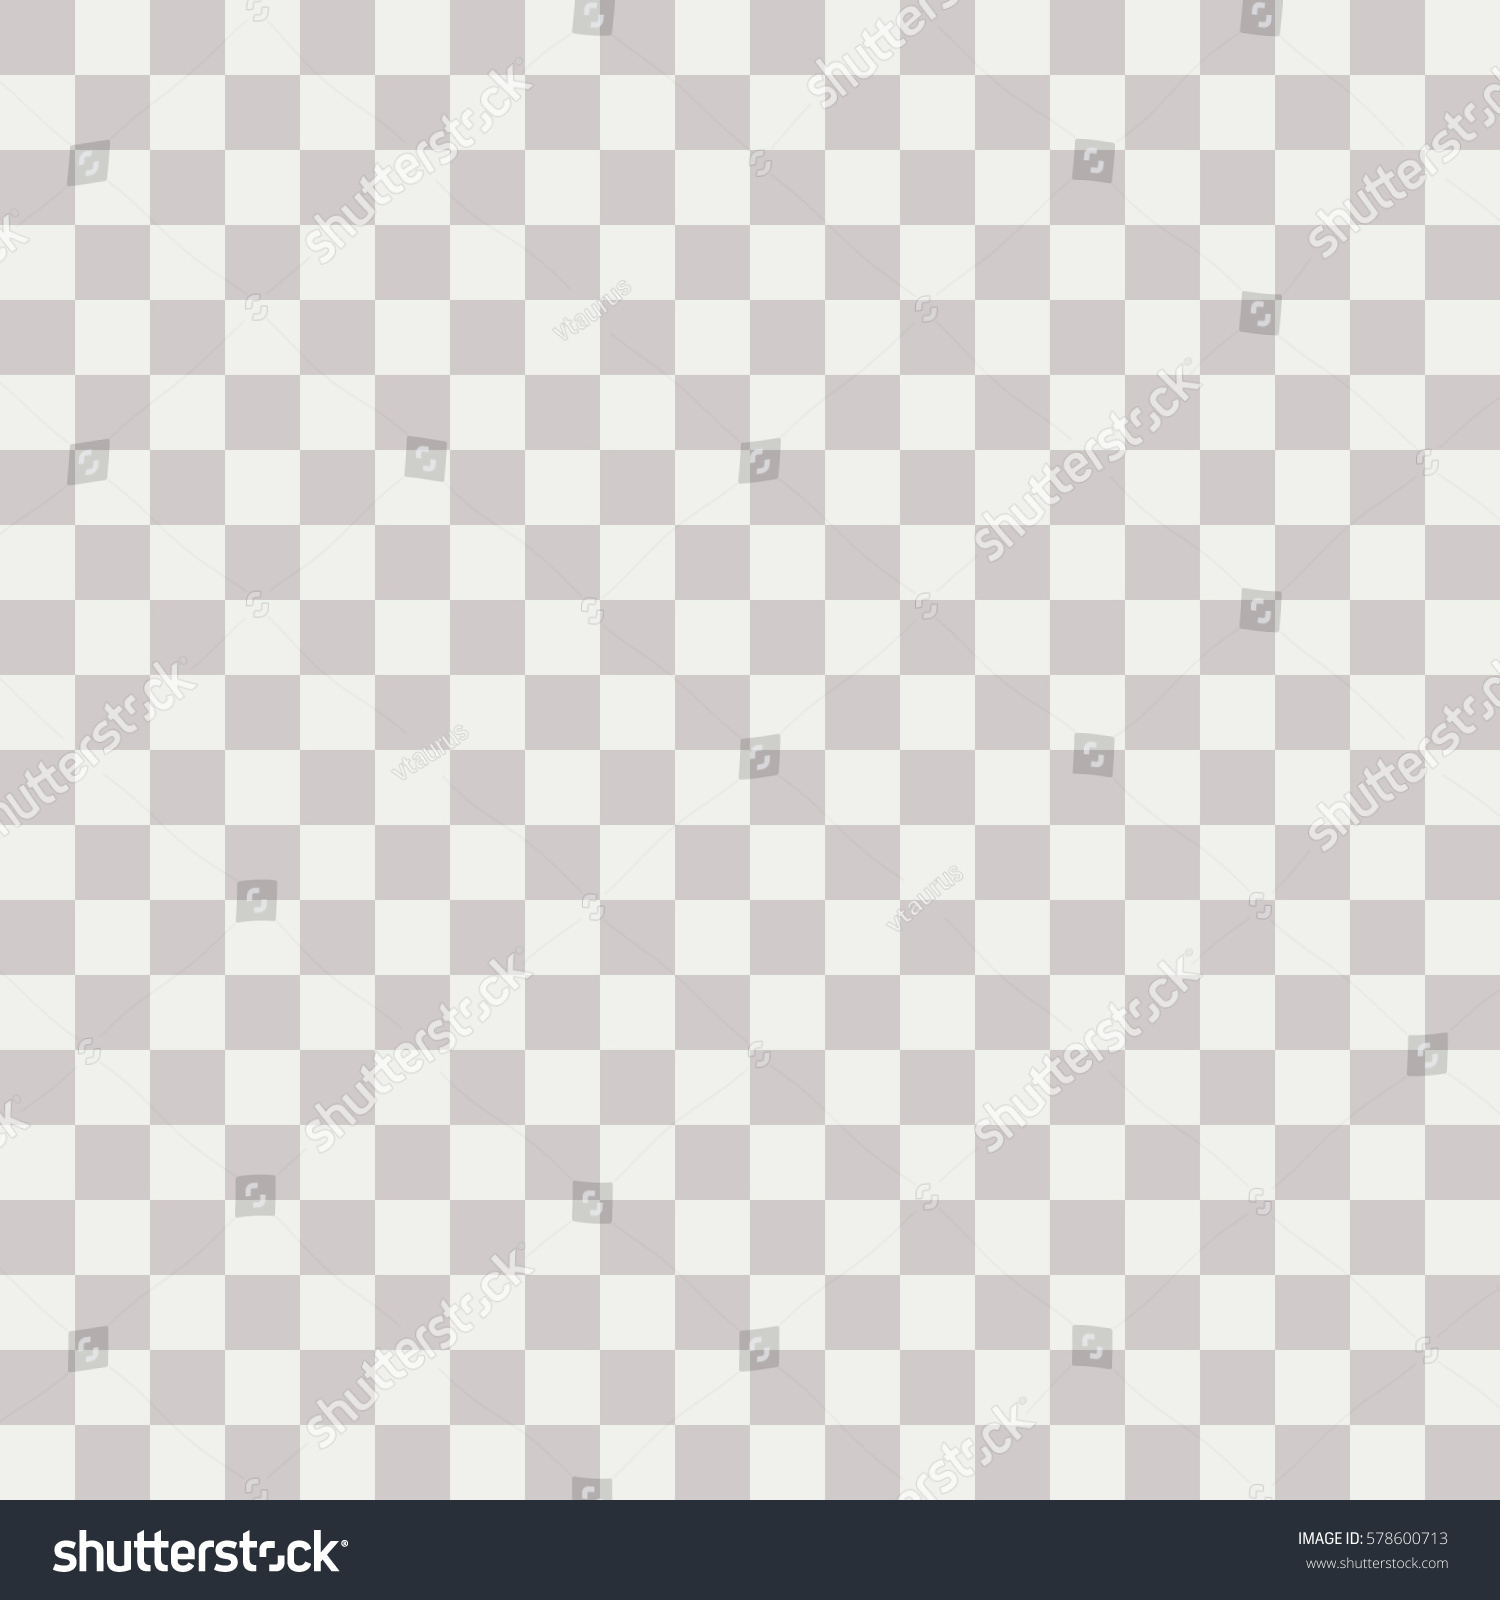 Seamless Check Pattern Checkered Background Checker Clip Art Vector Fabric Print